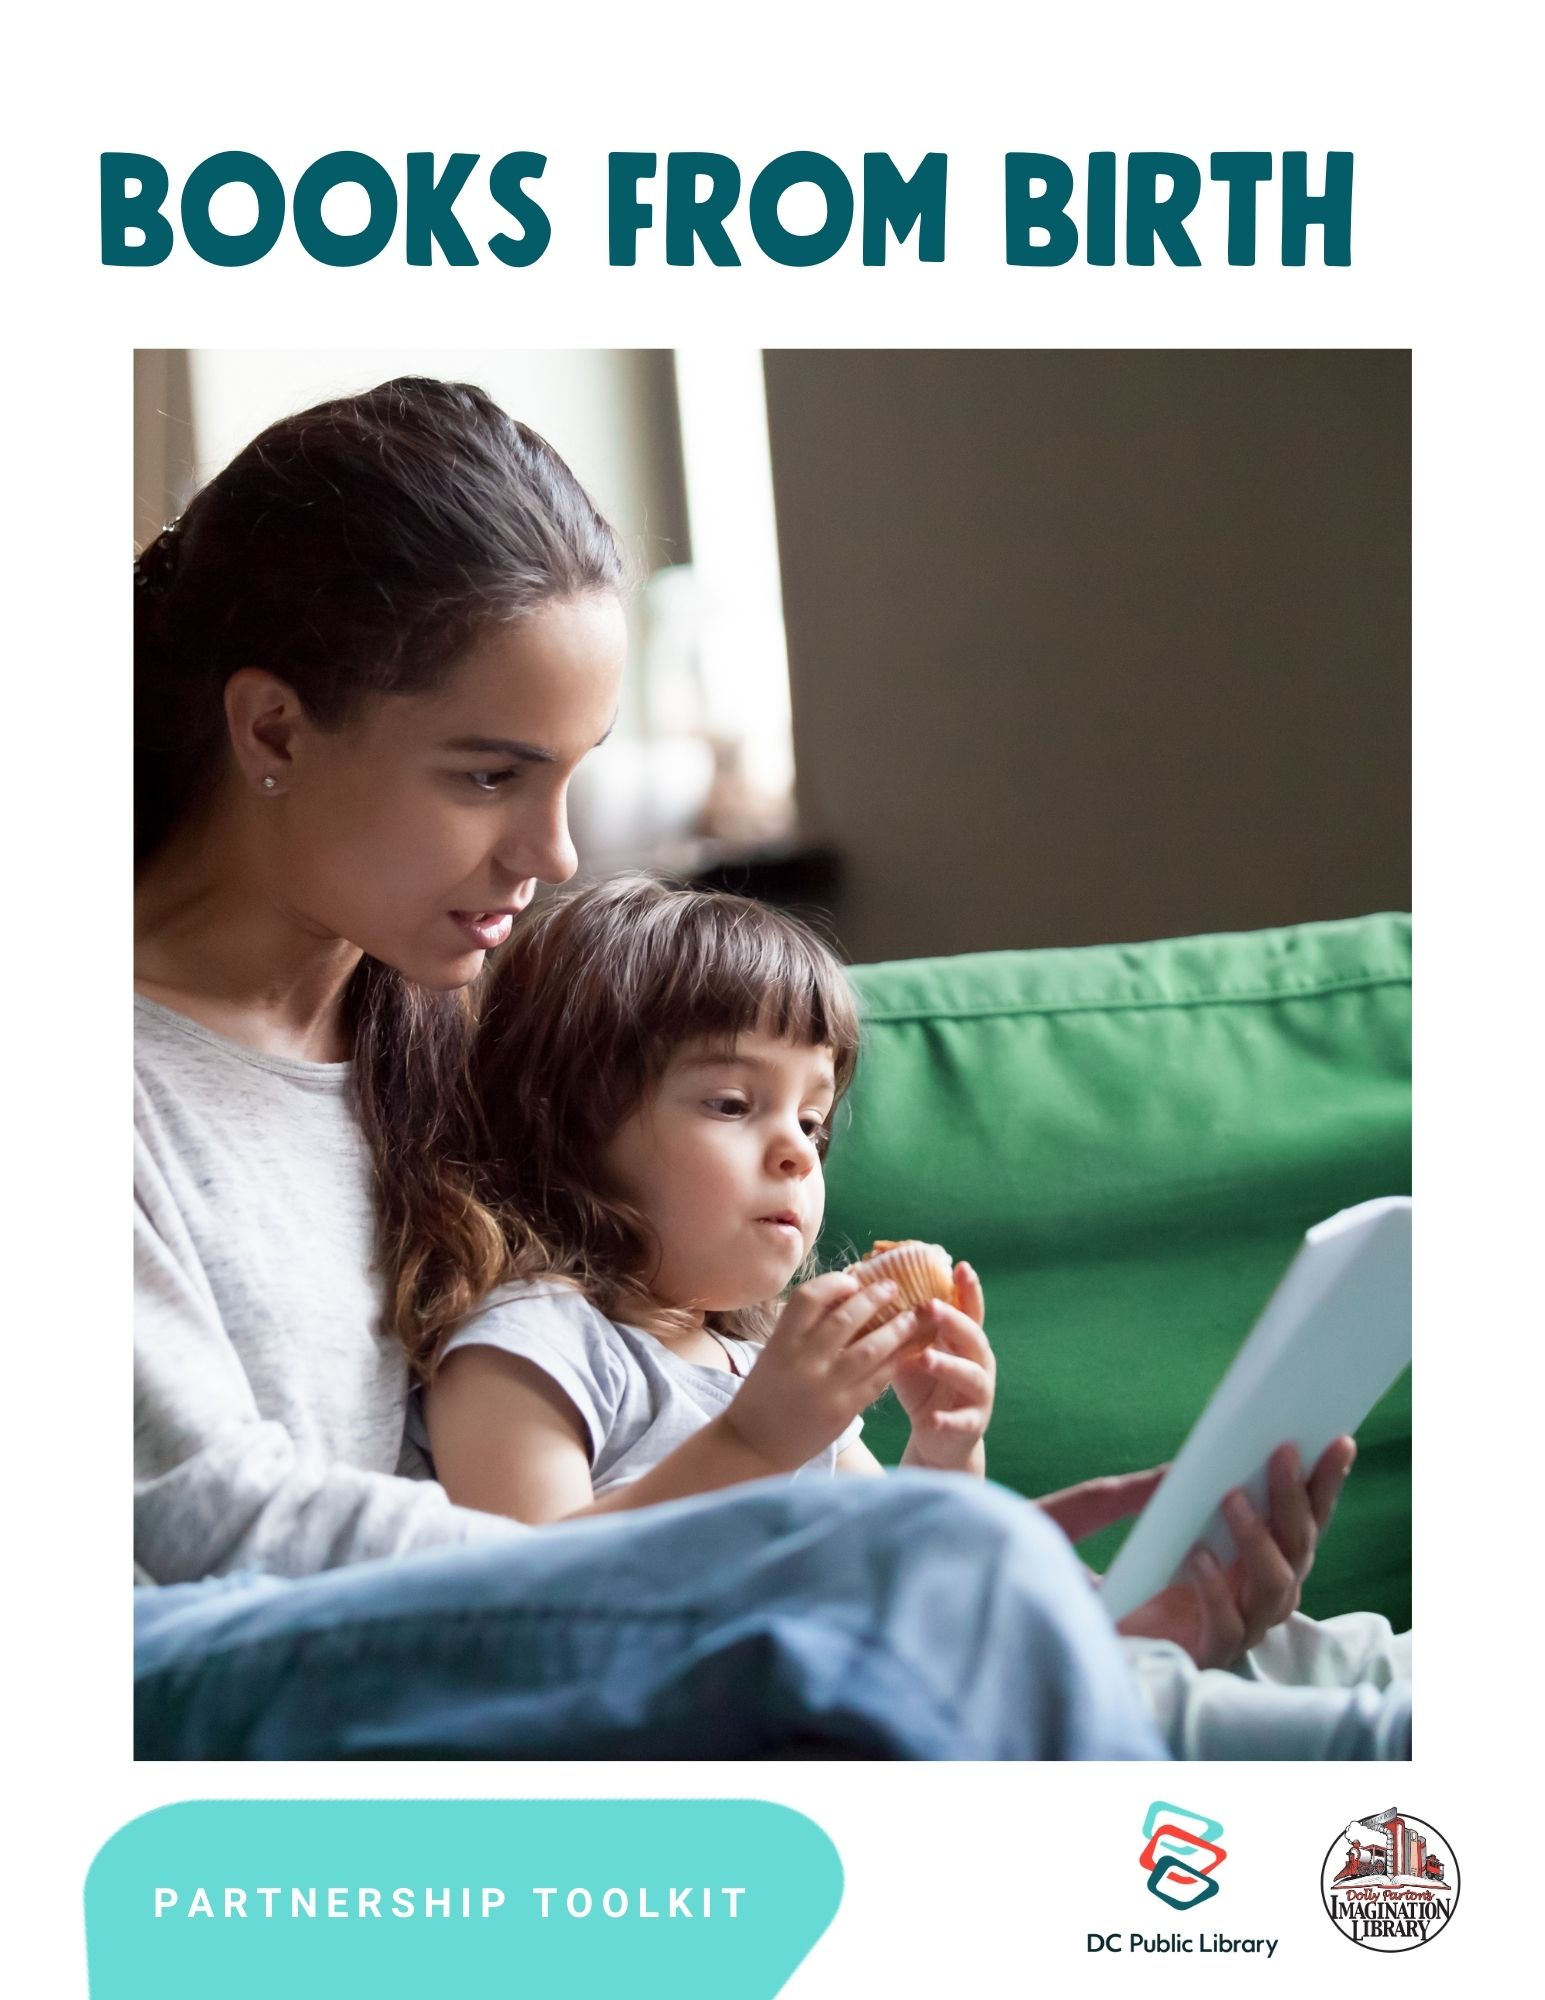 Books from Birth Partnership Toolkit Cover